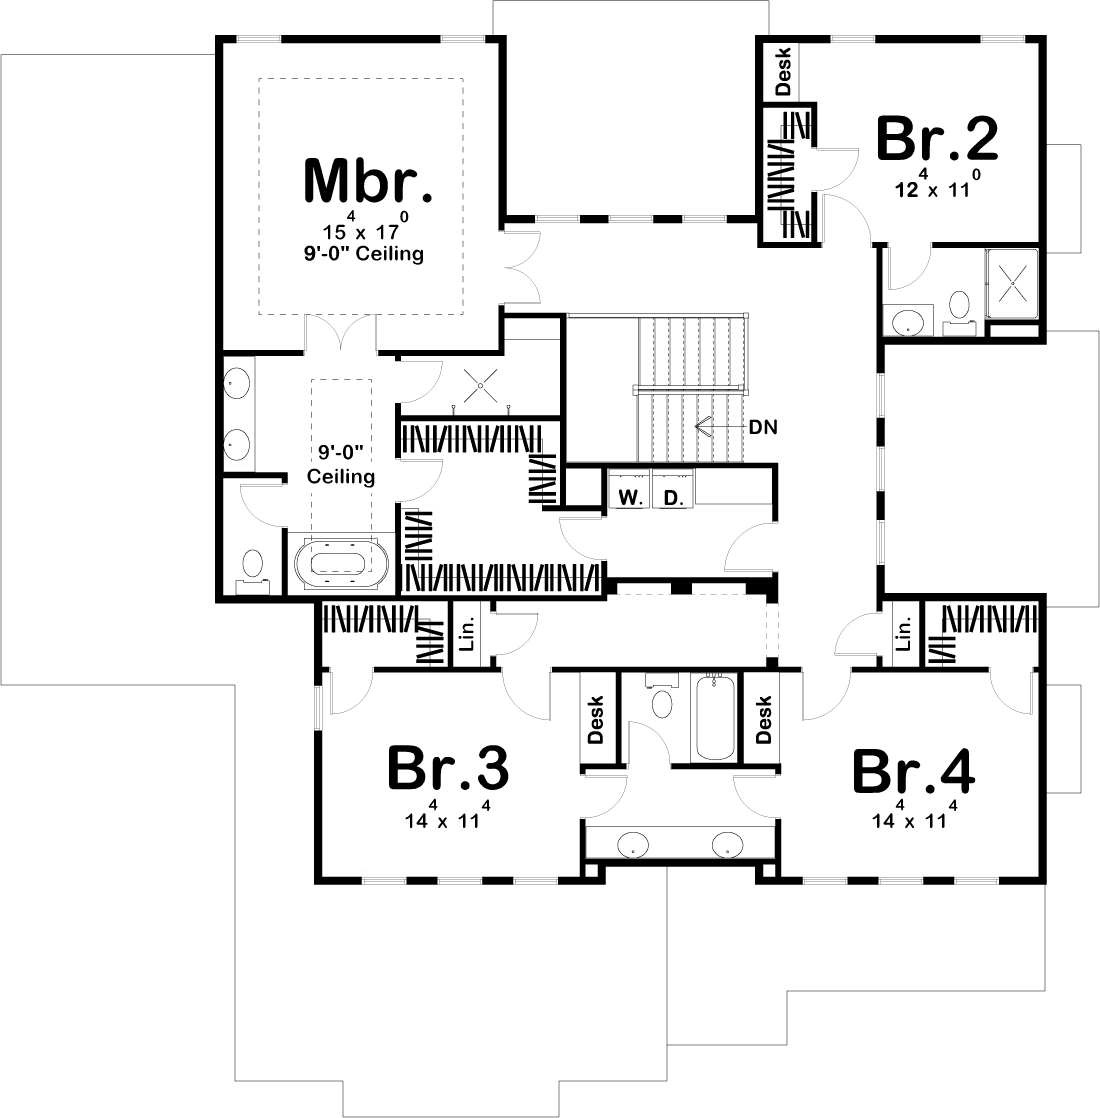 4 Bedrm 3156 Sq Ft Luxury House Plan 100 1214